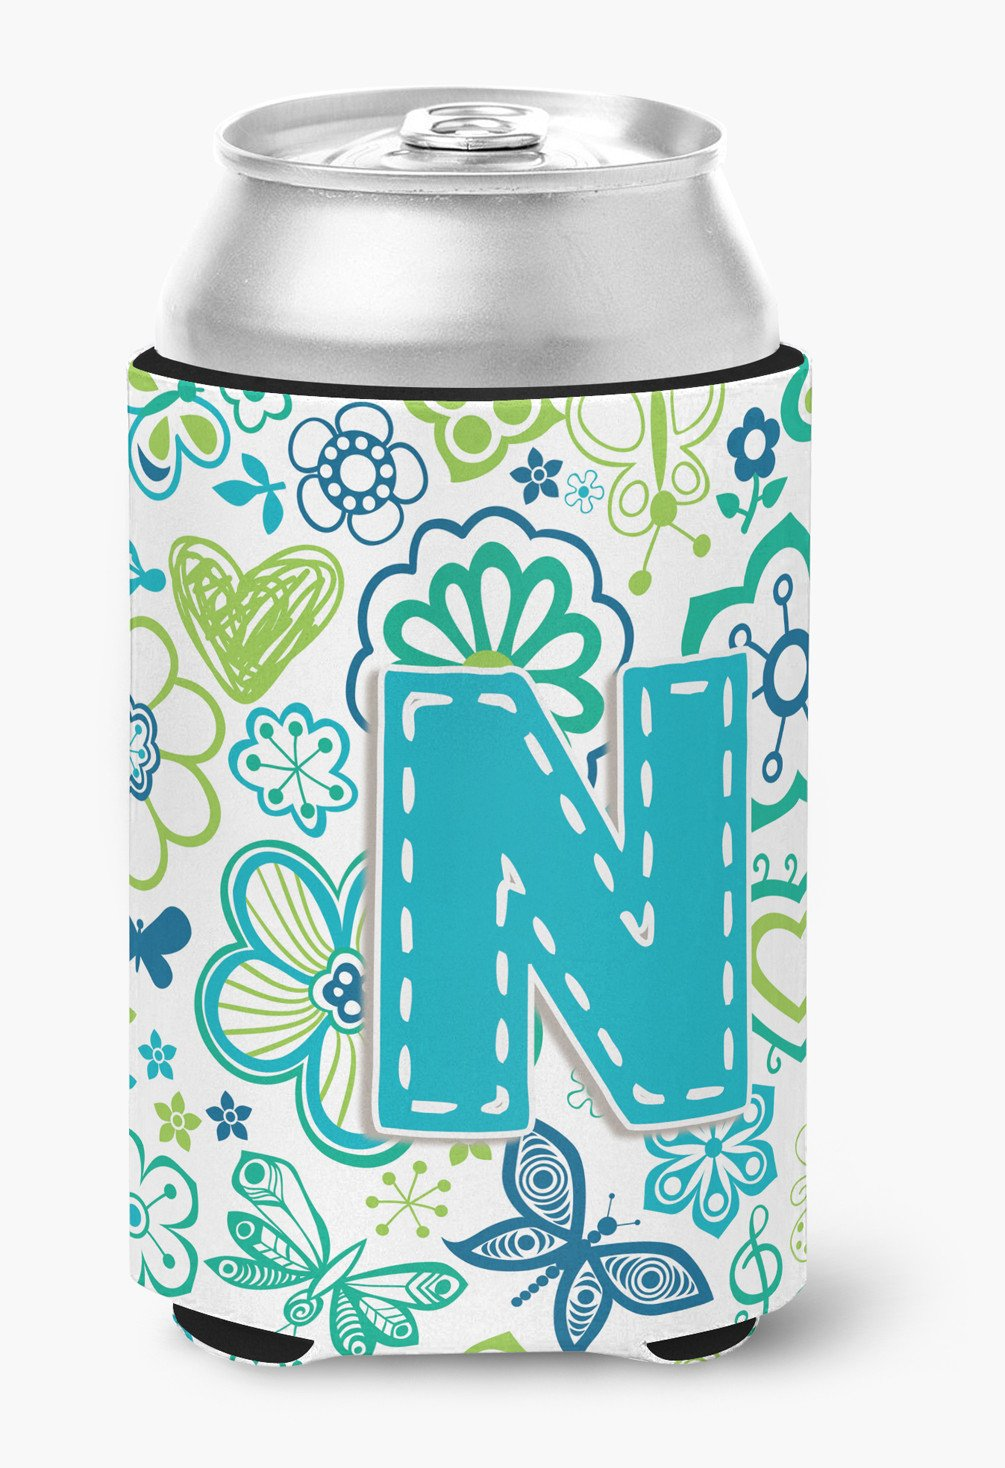 Letter N Flowers and Butterflies Teal Blue Can or Bottle Hugger CJ2006-NCC by Caroline's Treasures